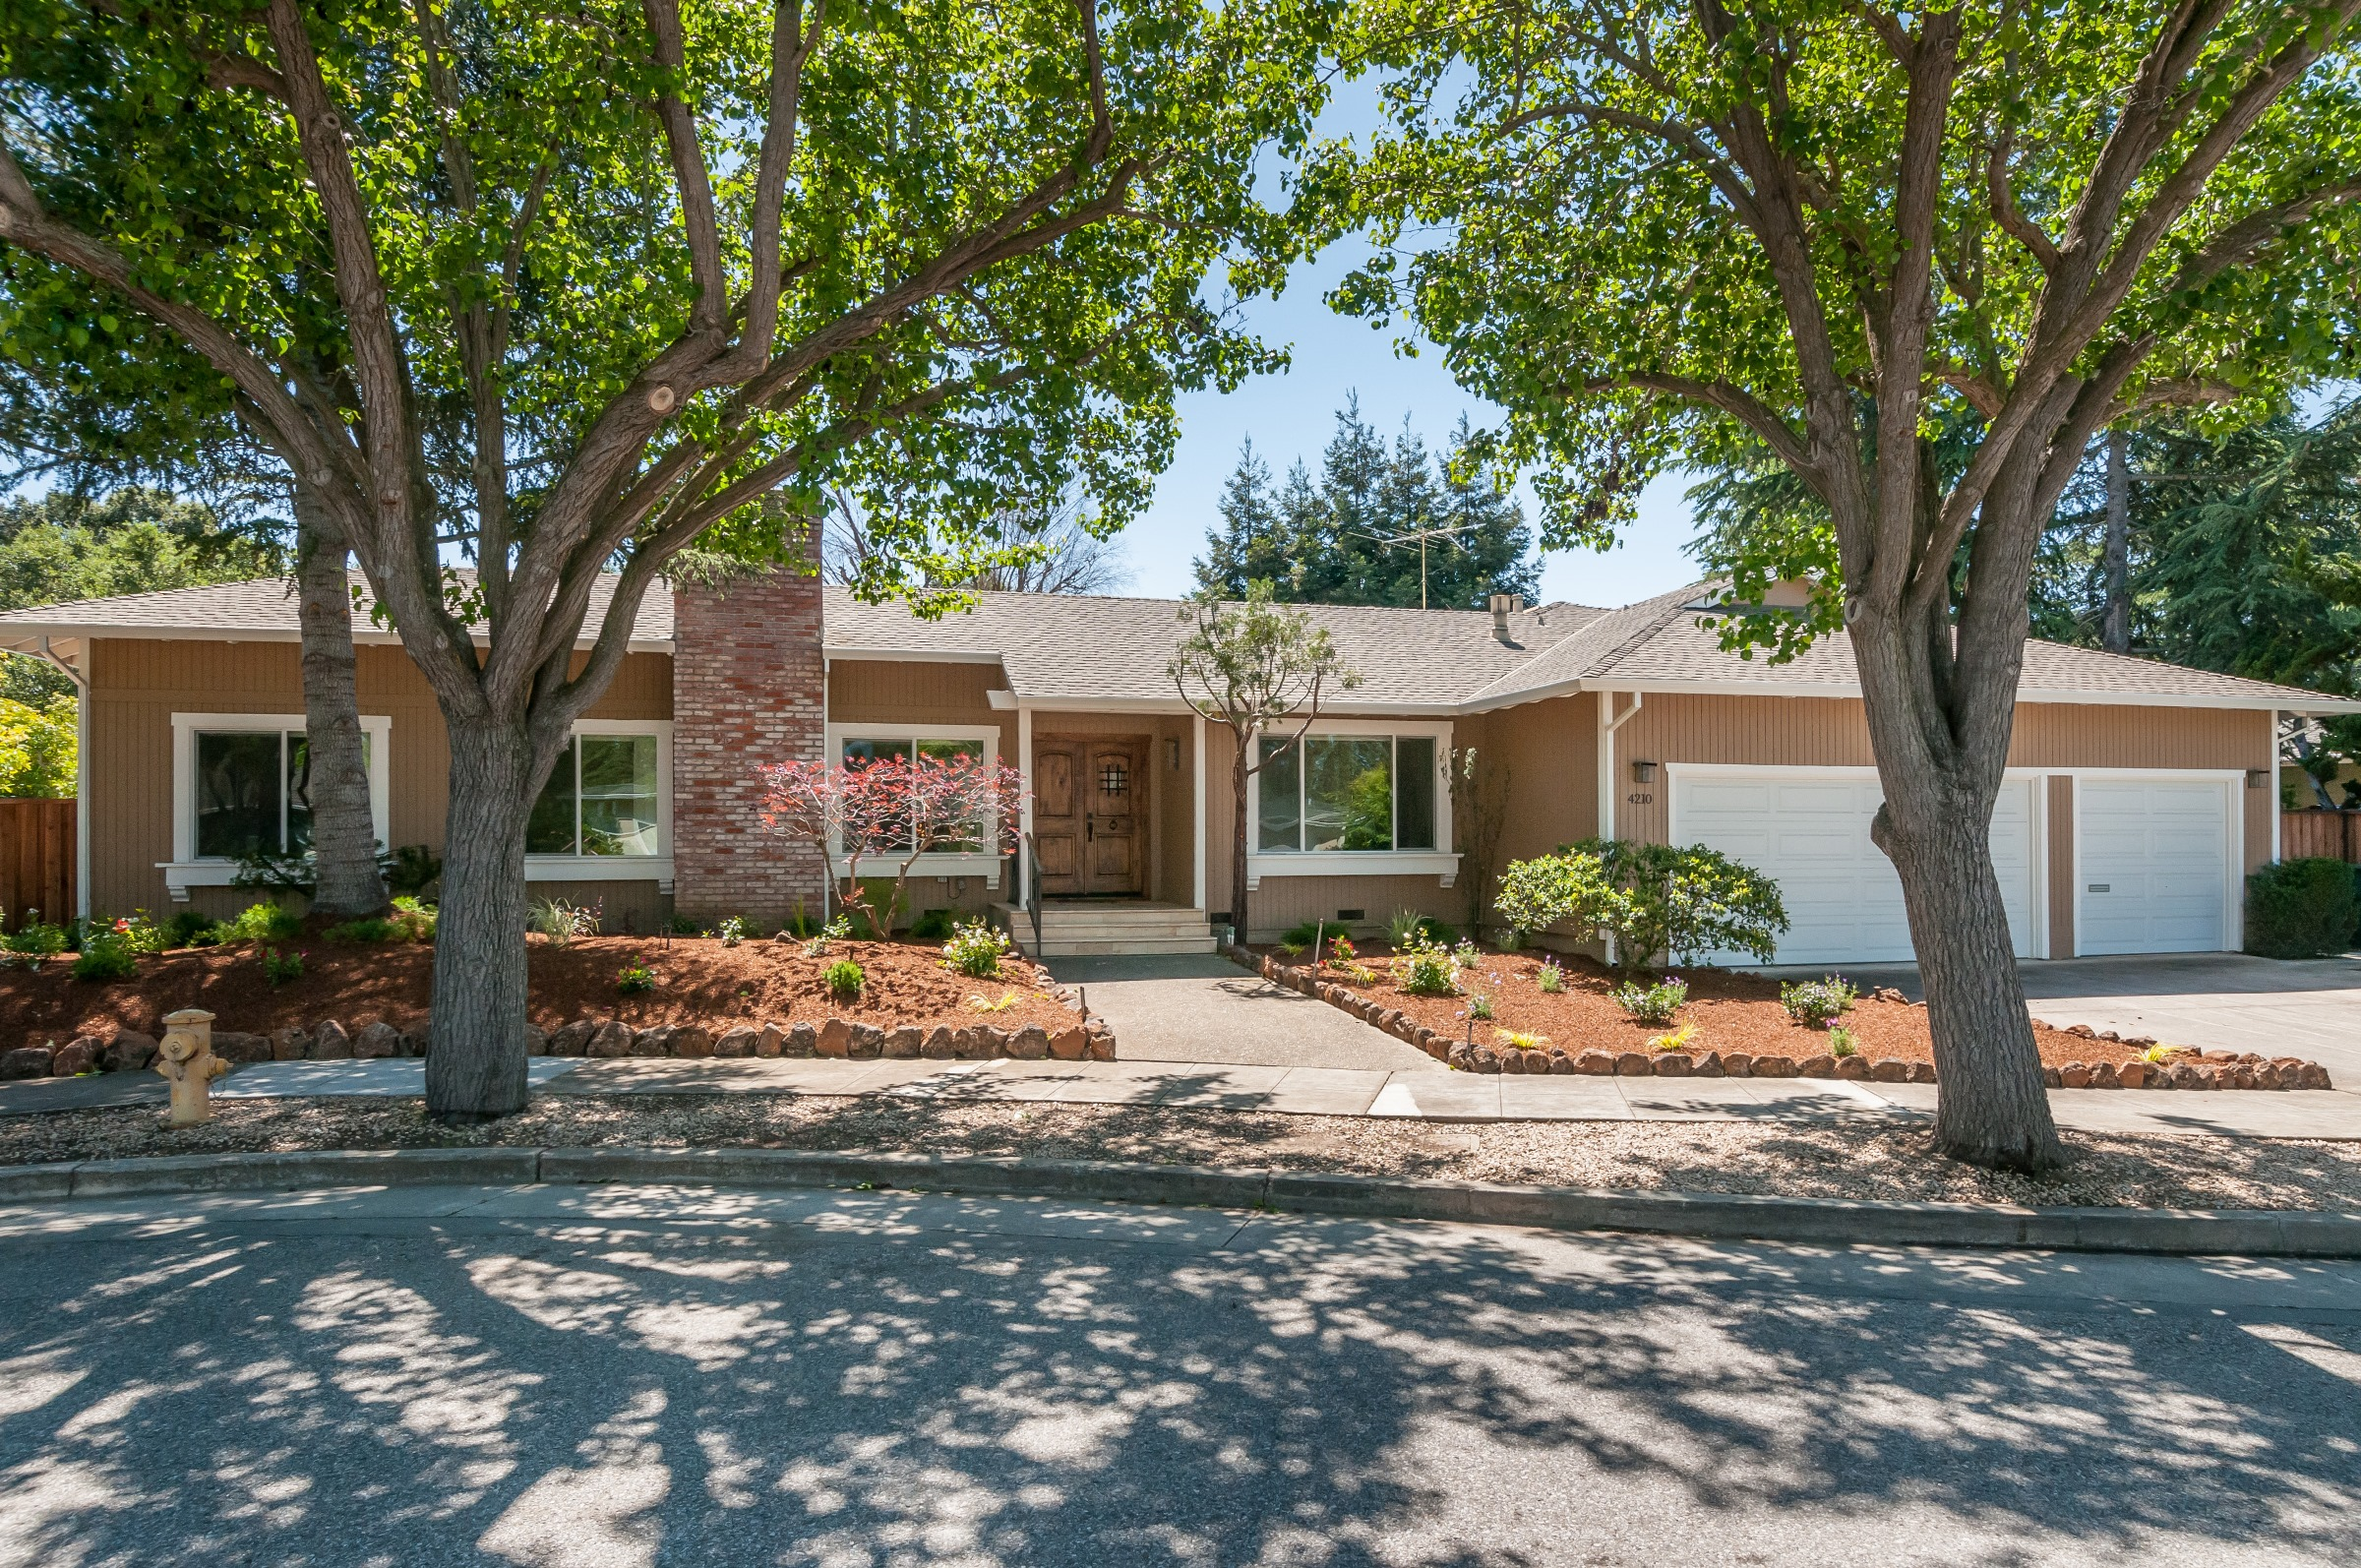 sales property at 4210 Ynigo Way, Palo Alto